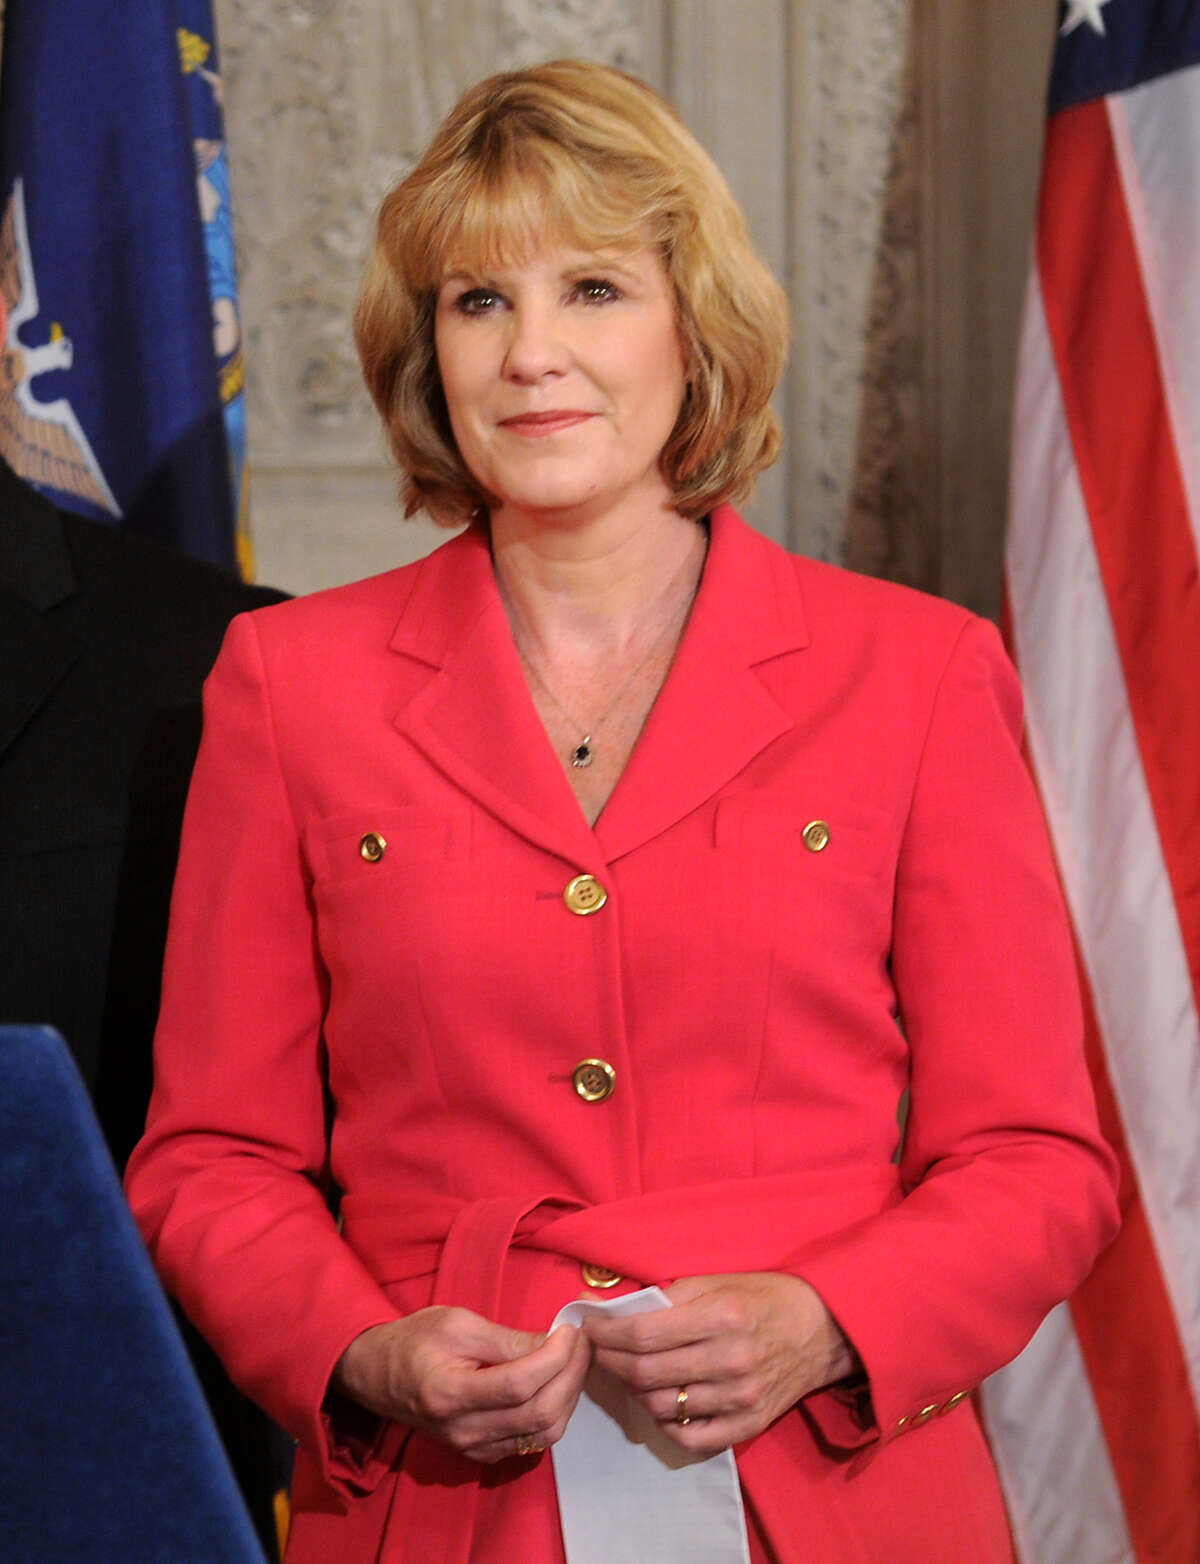 Sen. Cathy Young, R-Olean, Tuesday, Oct. 3, 2012, at the Capitol in Albany, N.Y. (Cindy Schultz / Times Union archive)